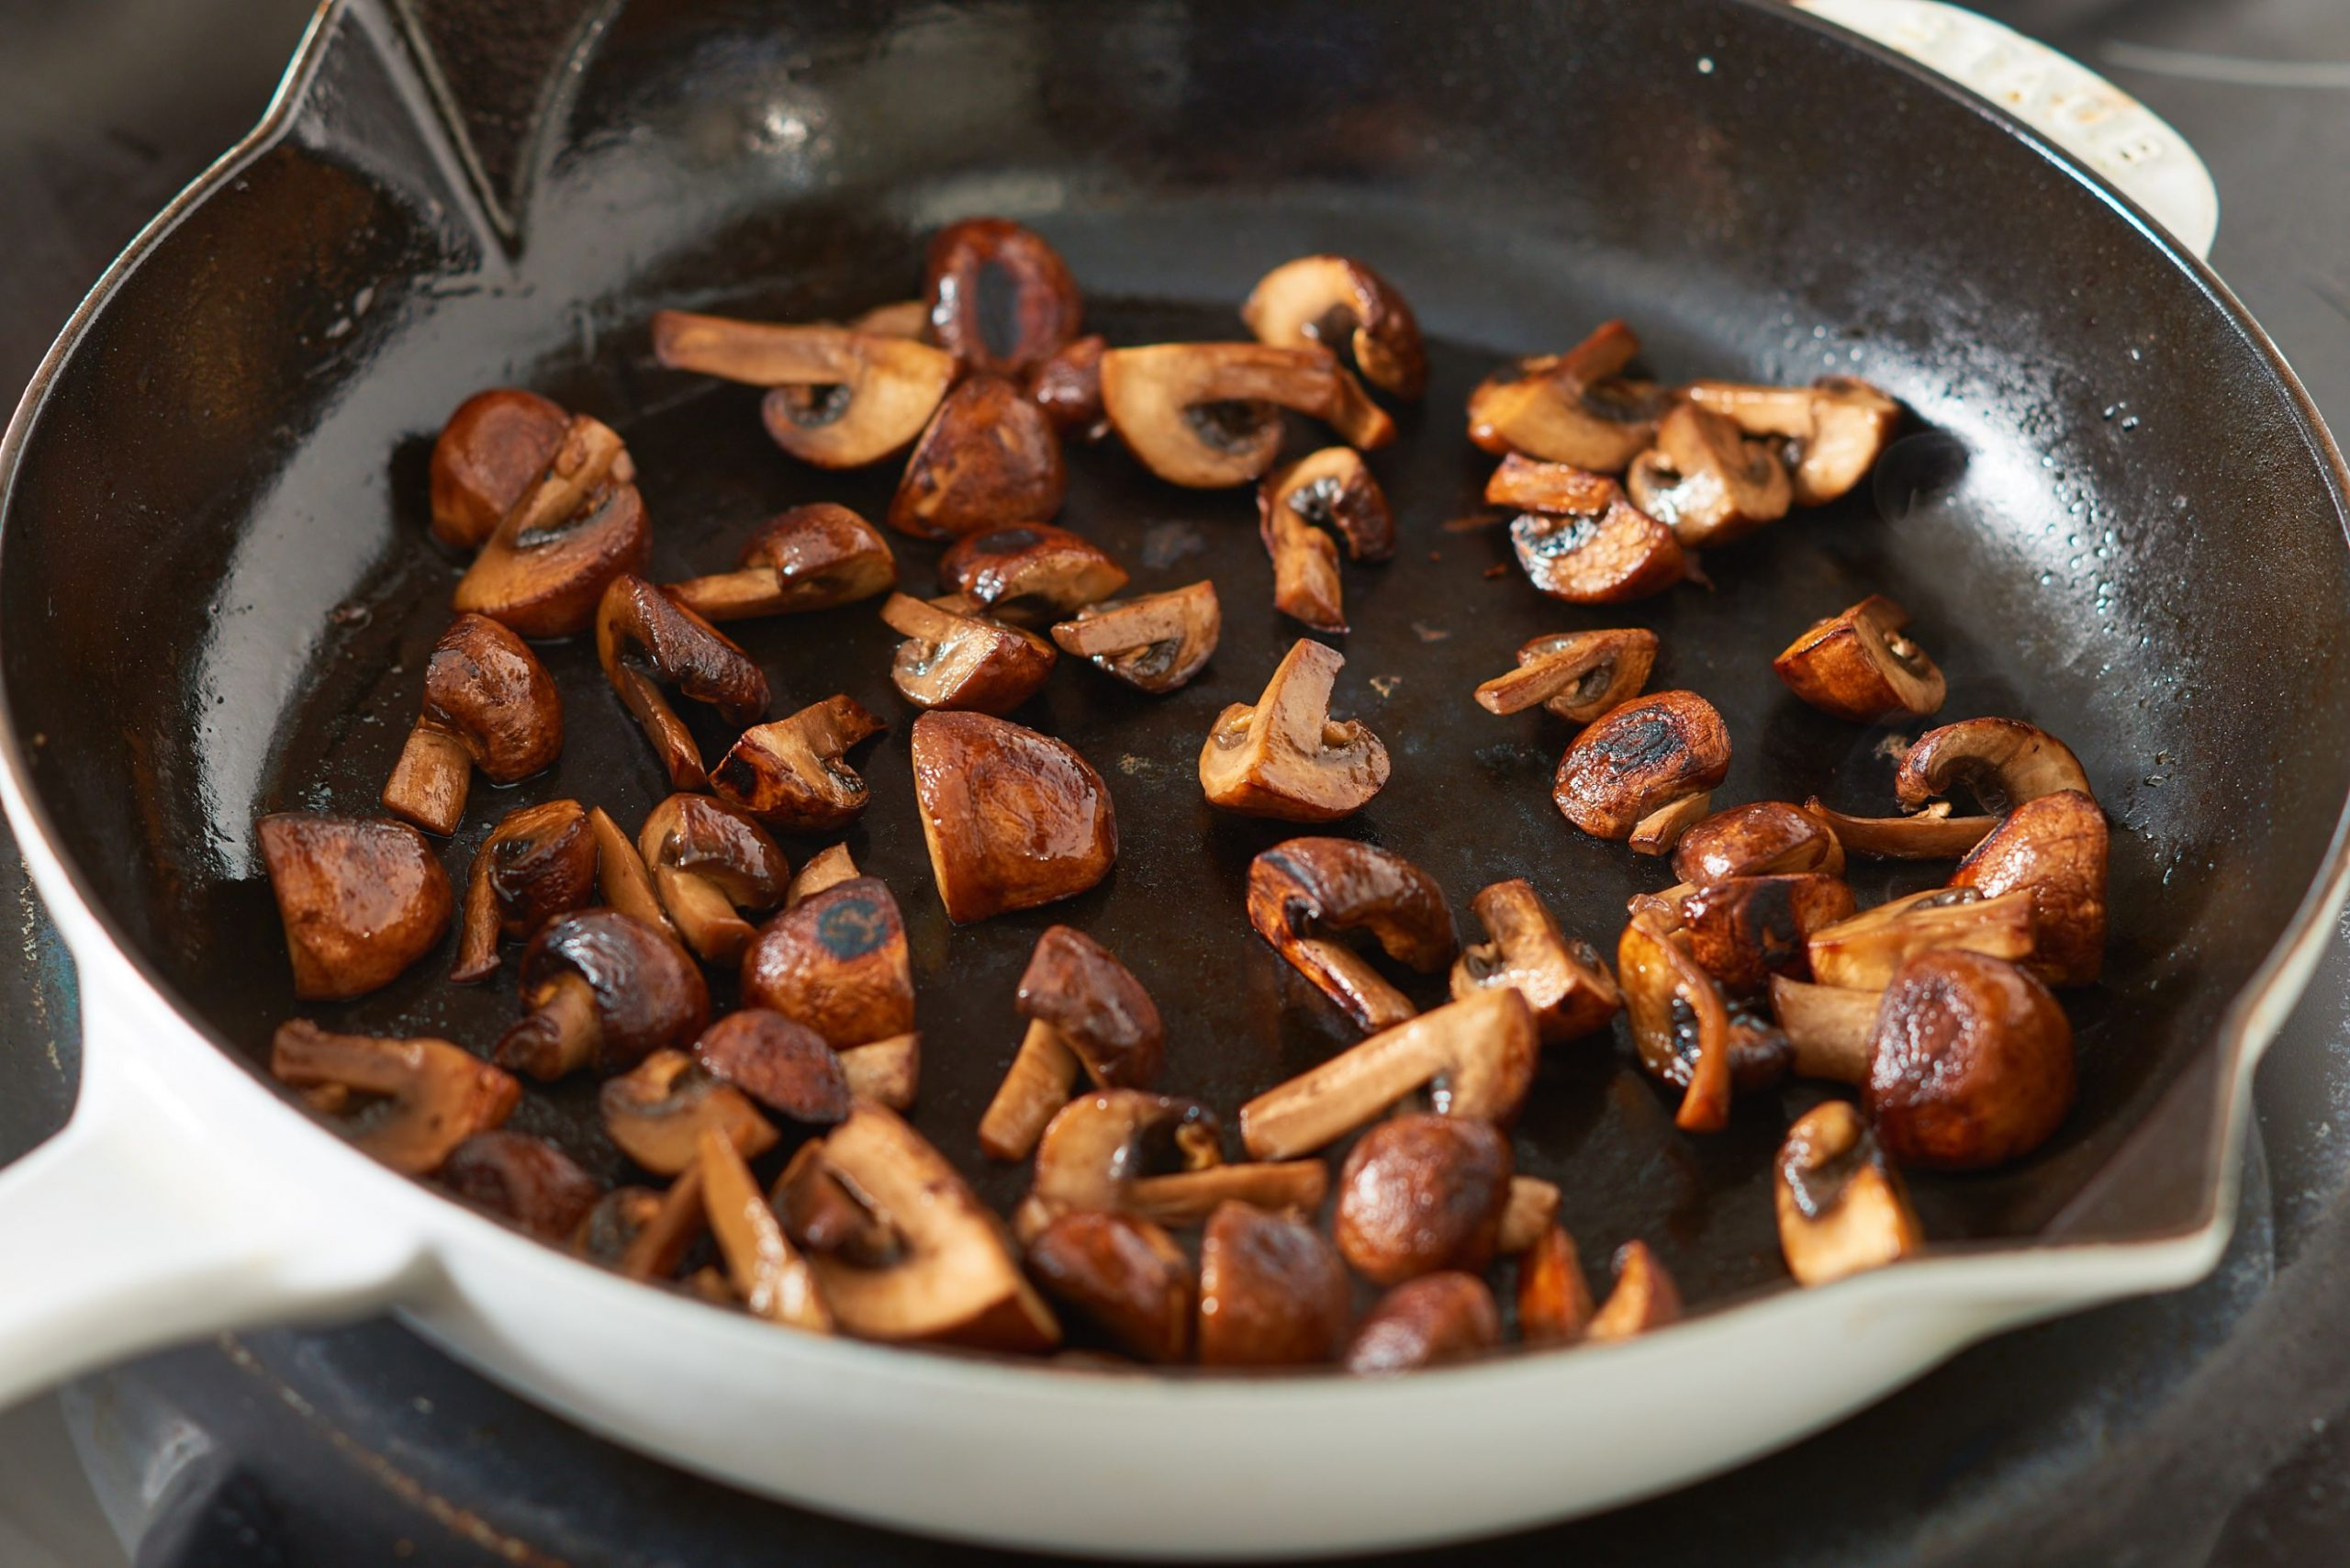 How To Cook Mushrooms on the Stovetop - Recipes Cooking Mushrooms